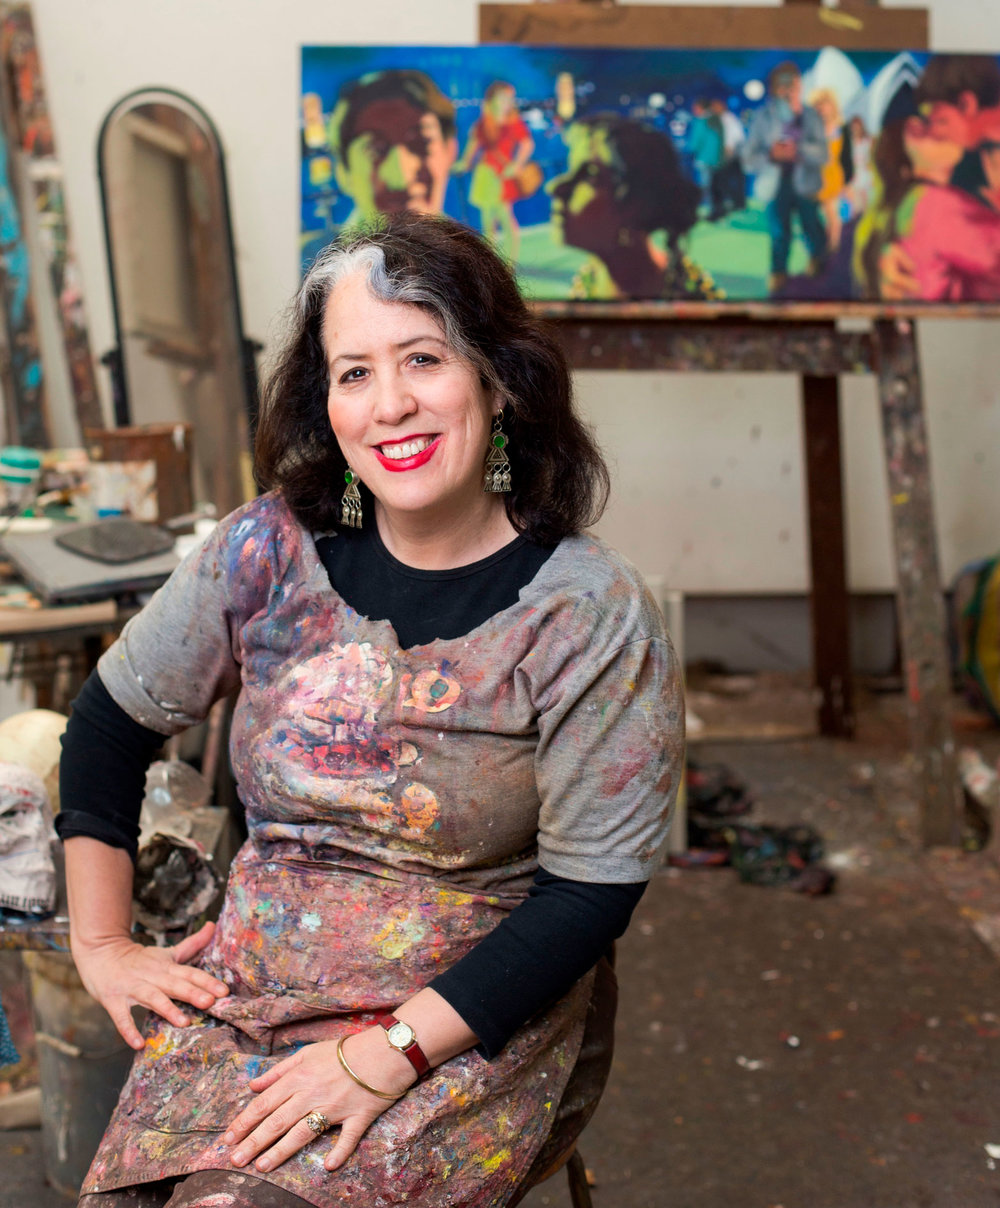 2017 Judge - Wendy Sharpe - Wendy Sharpe is one of Australia's most awarded artists. She lives and works in Sydney and Paris. Major awards include winning; The Sulman Prize, 2 travelling Scholarships, The Portia Geach Memorial Award (twice) and The Archibald Prize. Major commissions include; an Olympic pool size mural for Cook and Philip Park Aquatic Centre Sydney, a commission by the Australian War Memorial and an Australian Official Artist to East Timor 1999 (the 1st woman since WW2). Wendy has also had commissions to draw the Australian ballet. She has been awarded many international artist residencies in Paris (twice), Egypt, Mexico, China and two Antarctica residencies. Wendy has been a Finalist in the Sulman Prize - Art Gallery of New South Wales, 12 times and a Finalist in the Archibald Prize - Art Gallery of New South Wales, 6 times. She has held over 46 solo exhibitions around Australia and internationally.www.wendysharpe.com